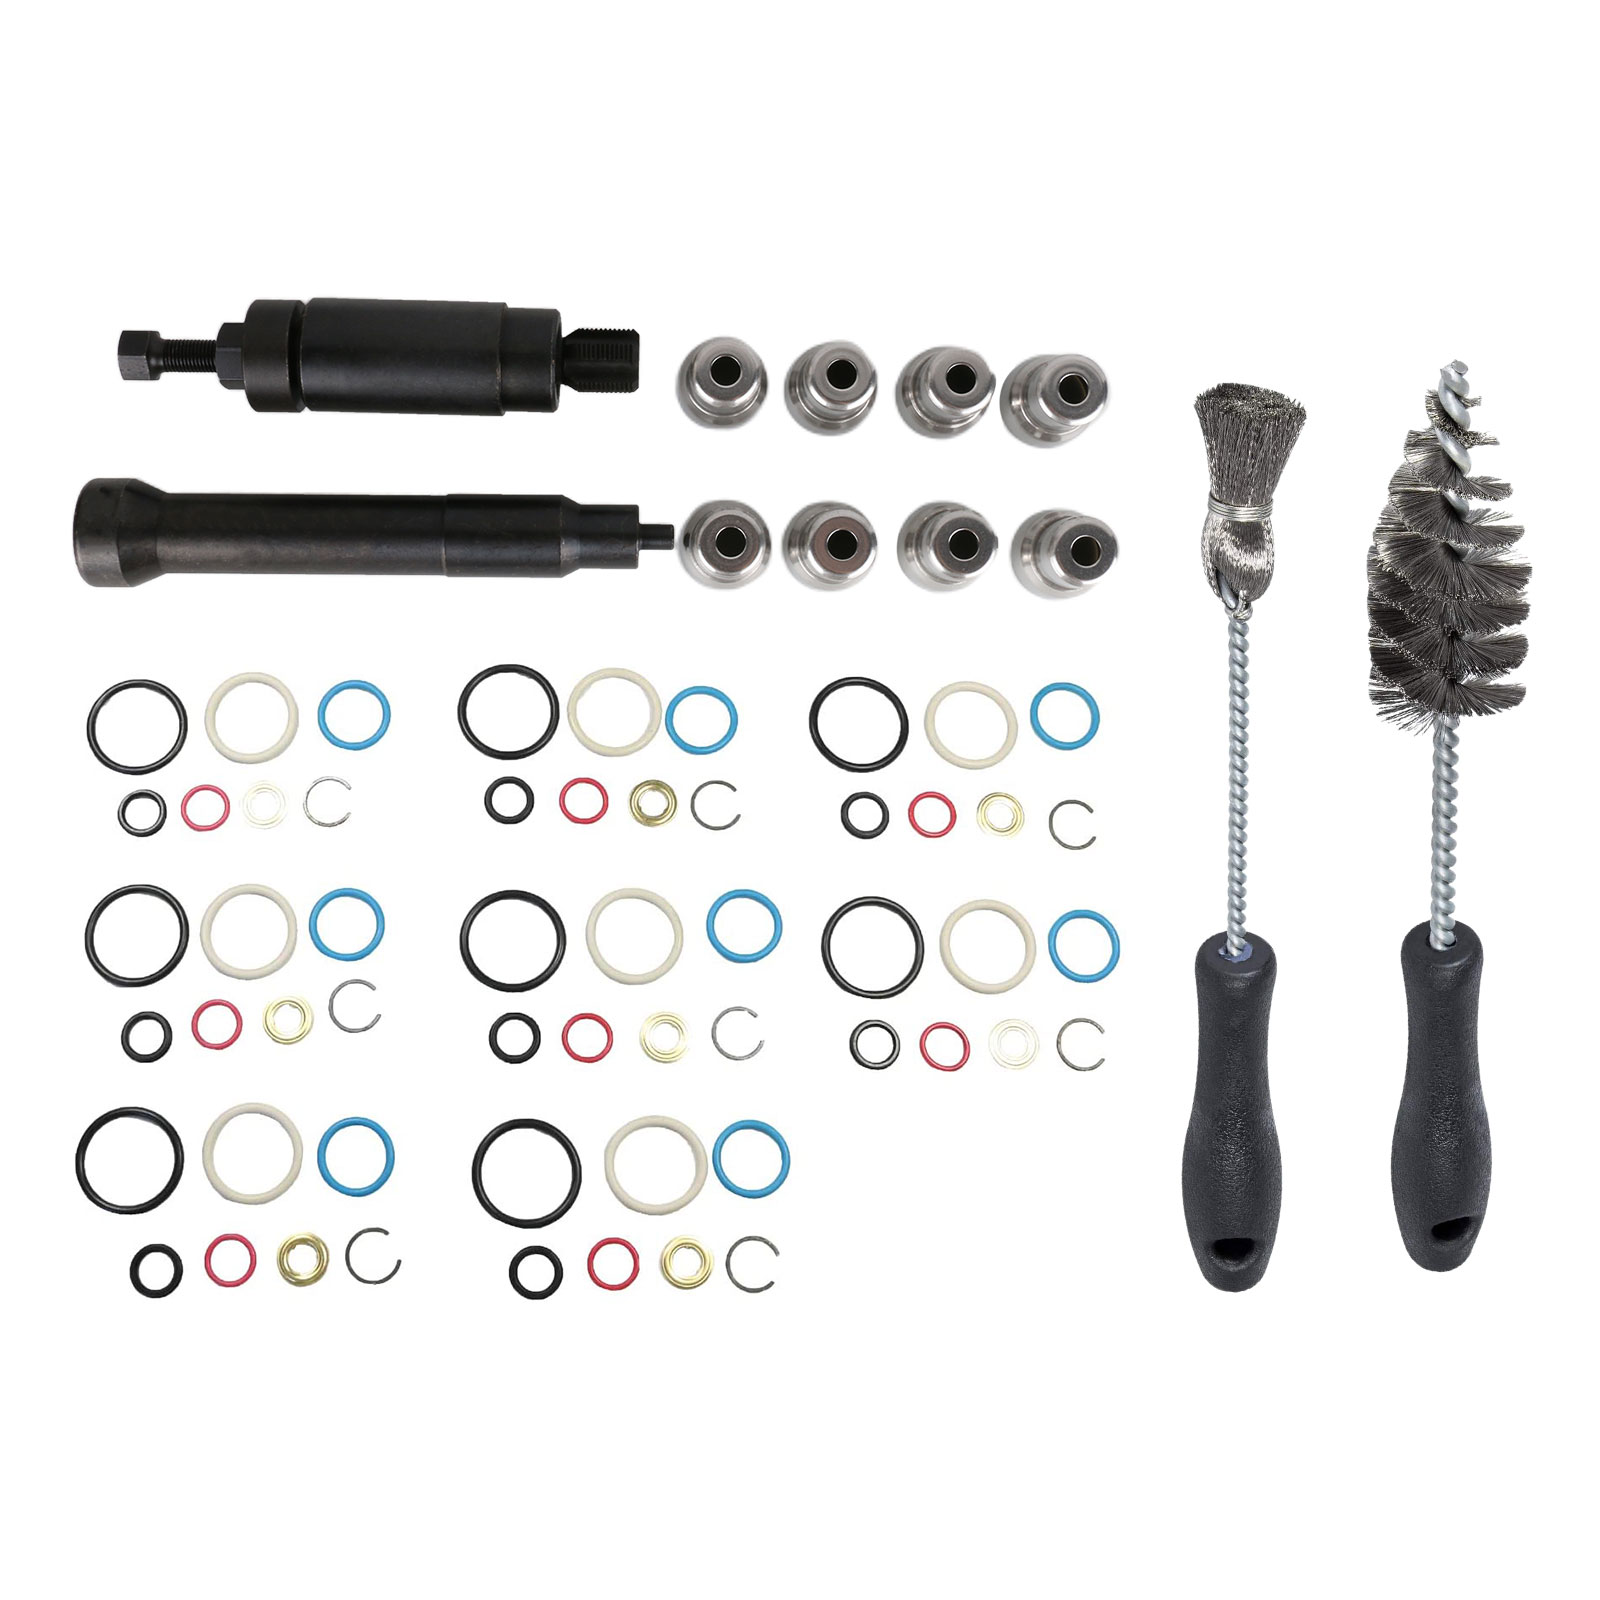 Injector Sleeve Cup Removal Tool /& Install Kit For 2003-10 Ford 6.0L Powerstroke